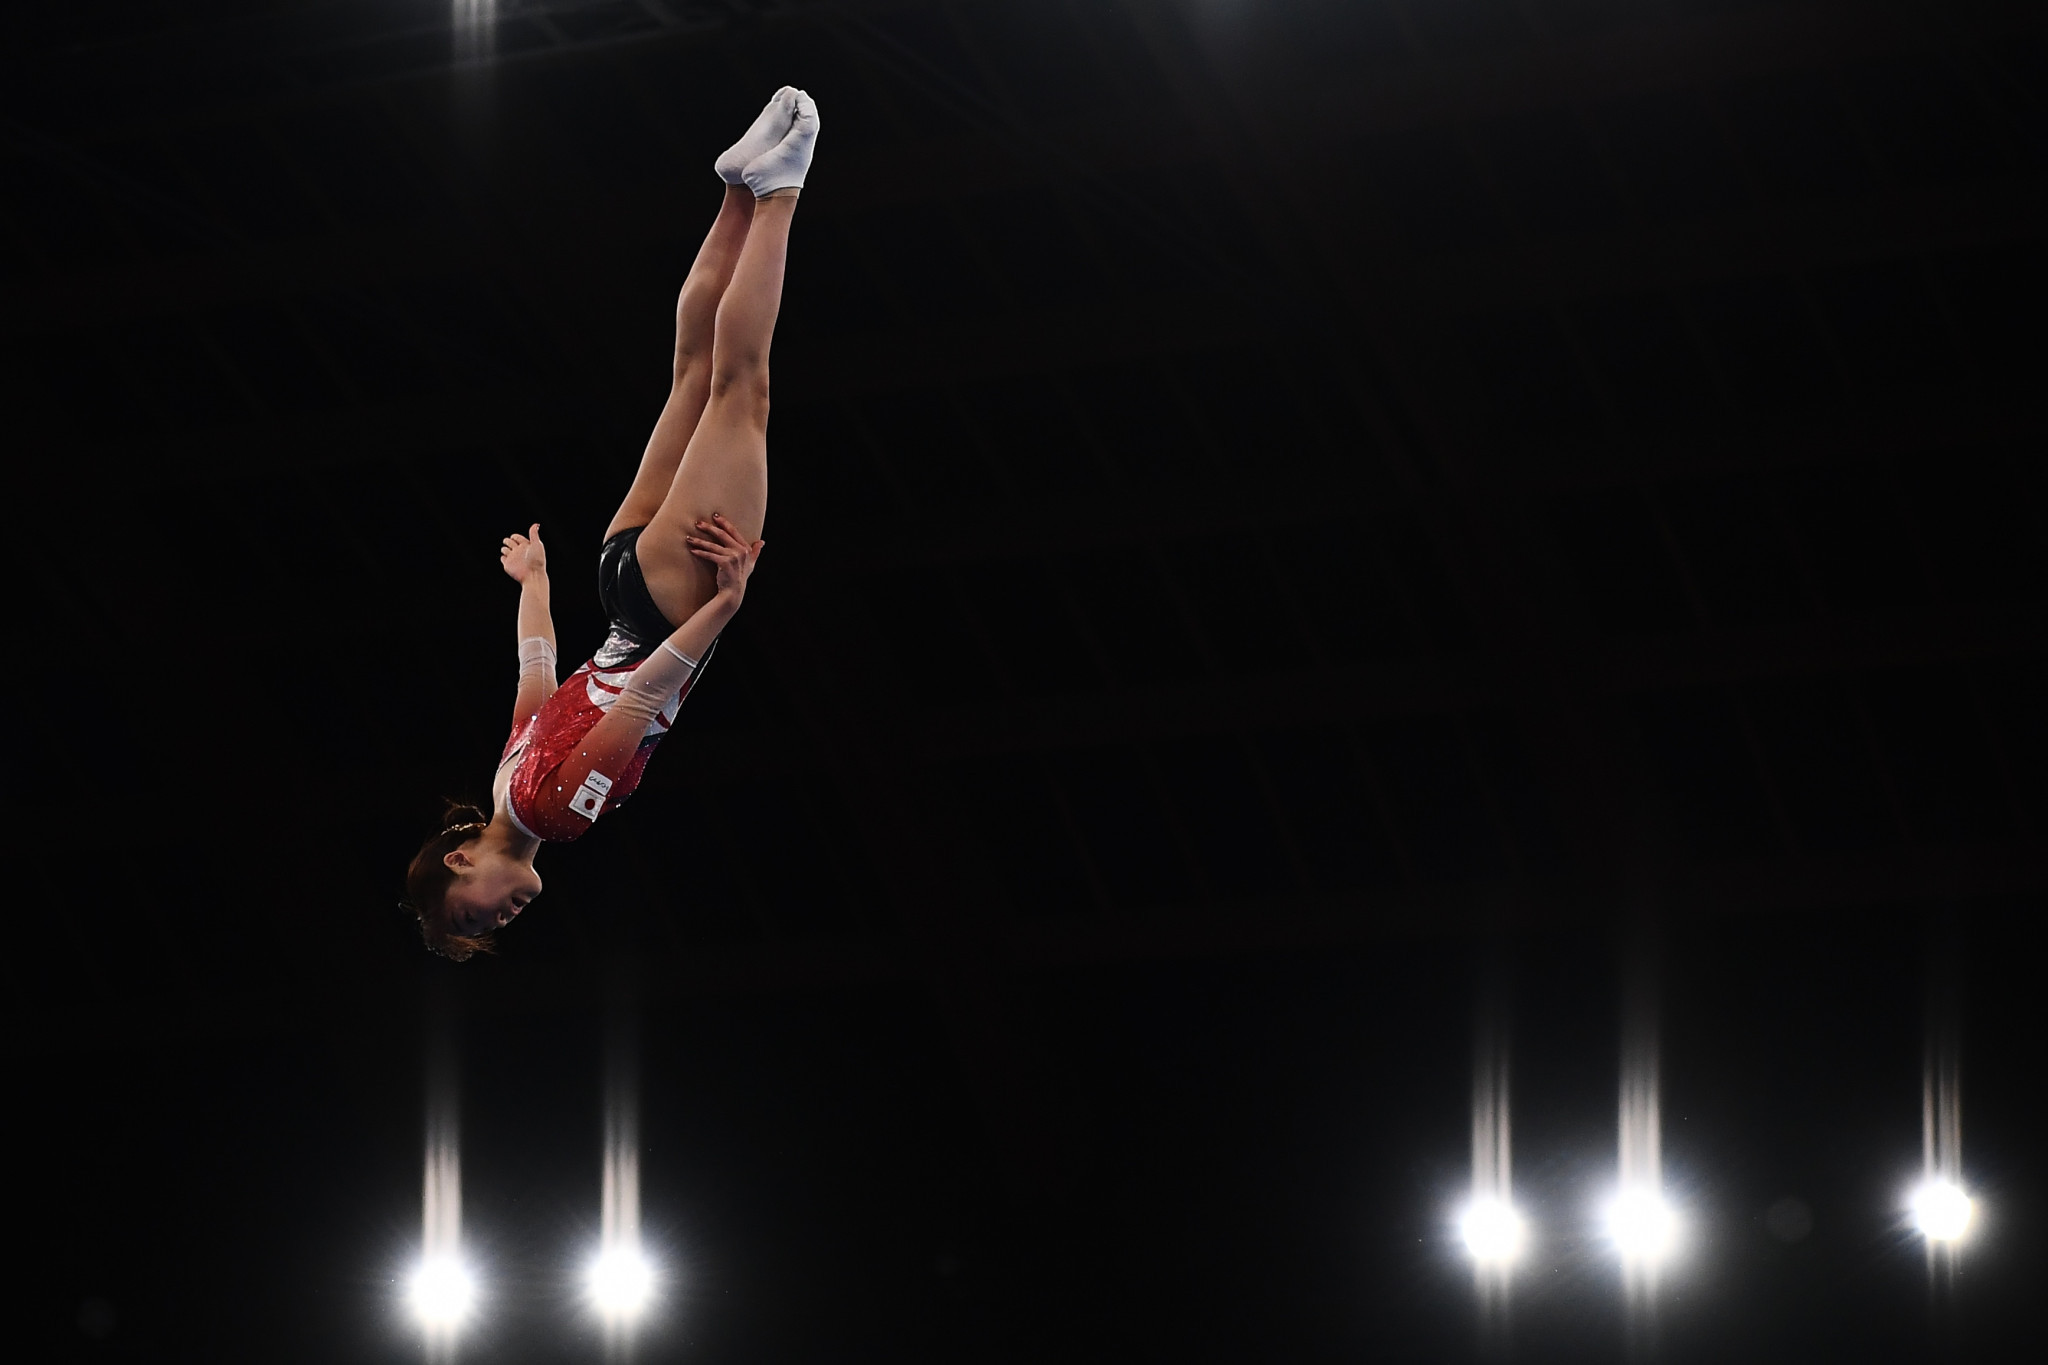 Trampoline Gymnastics World Championships pushed back to avoid FIG Congress clash